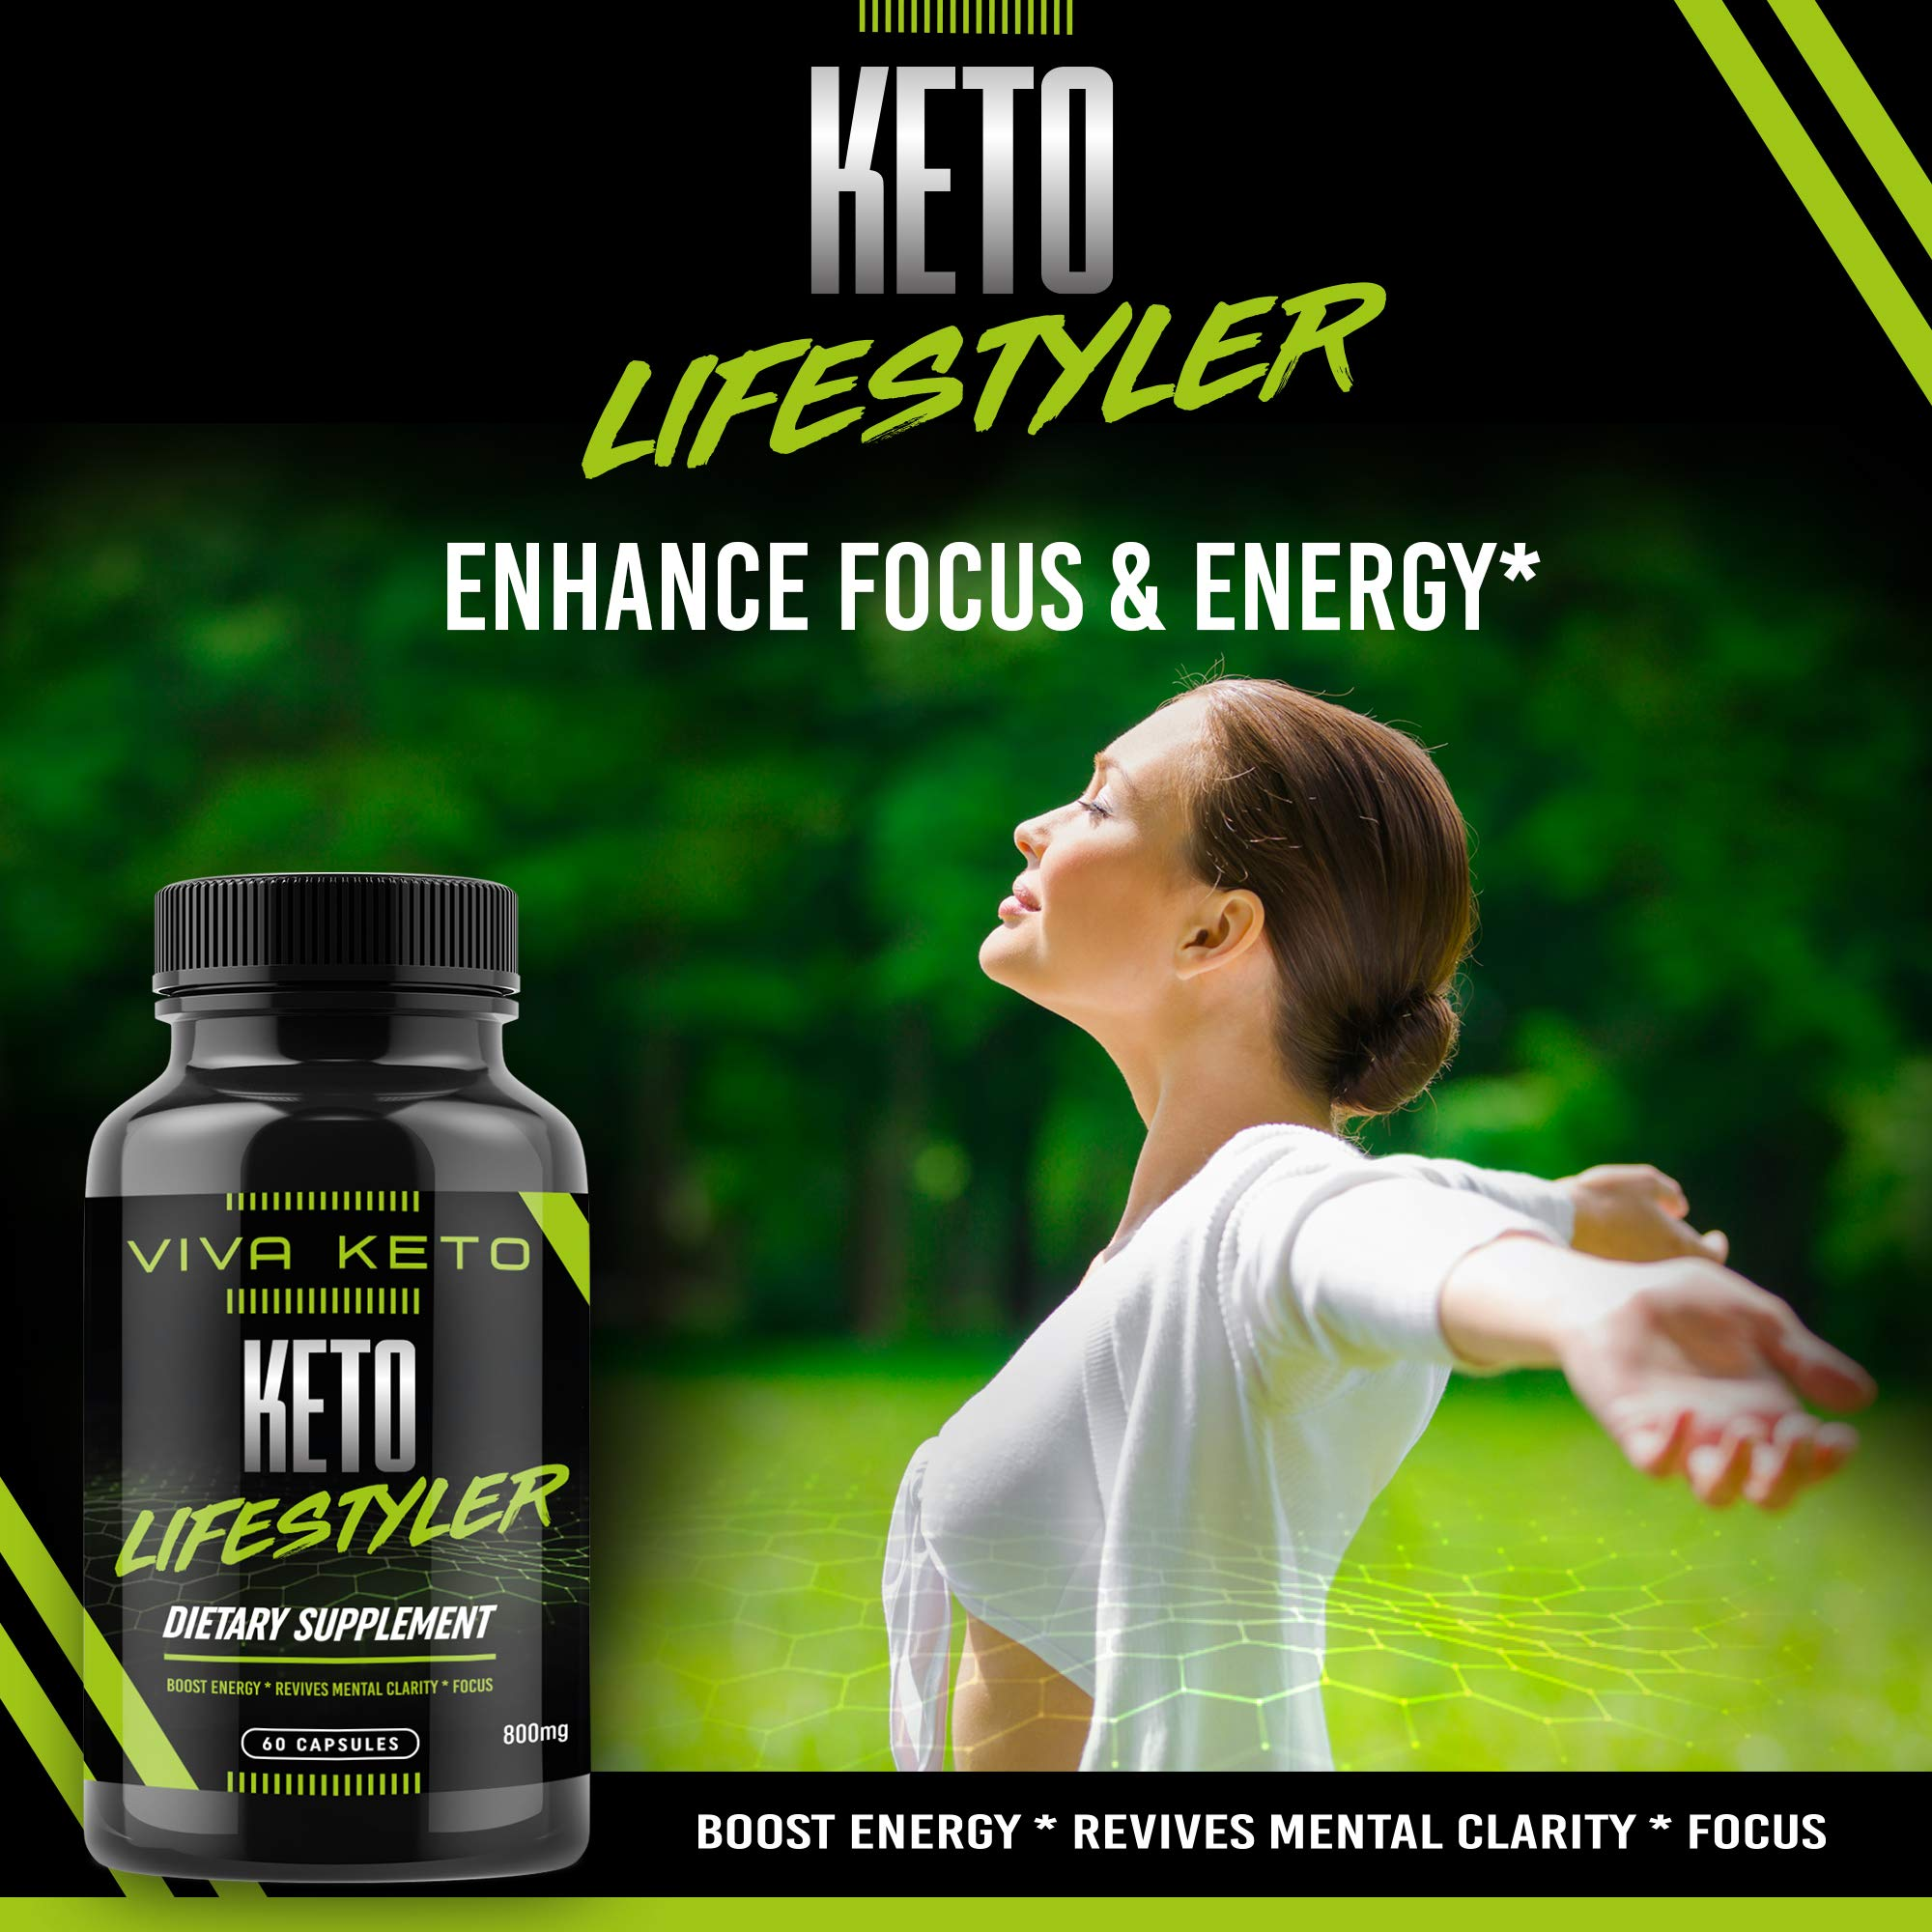 Keto Diet Pills Appetite Suppressant Supplement - Exogenous Ketones Ketogenic Diet Pills - Boosts Metabolism and Supplies Energy- 60 Capsules by Keto Lifestyler (Image #2)